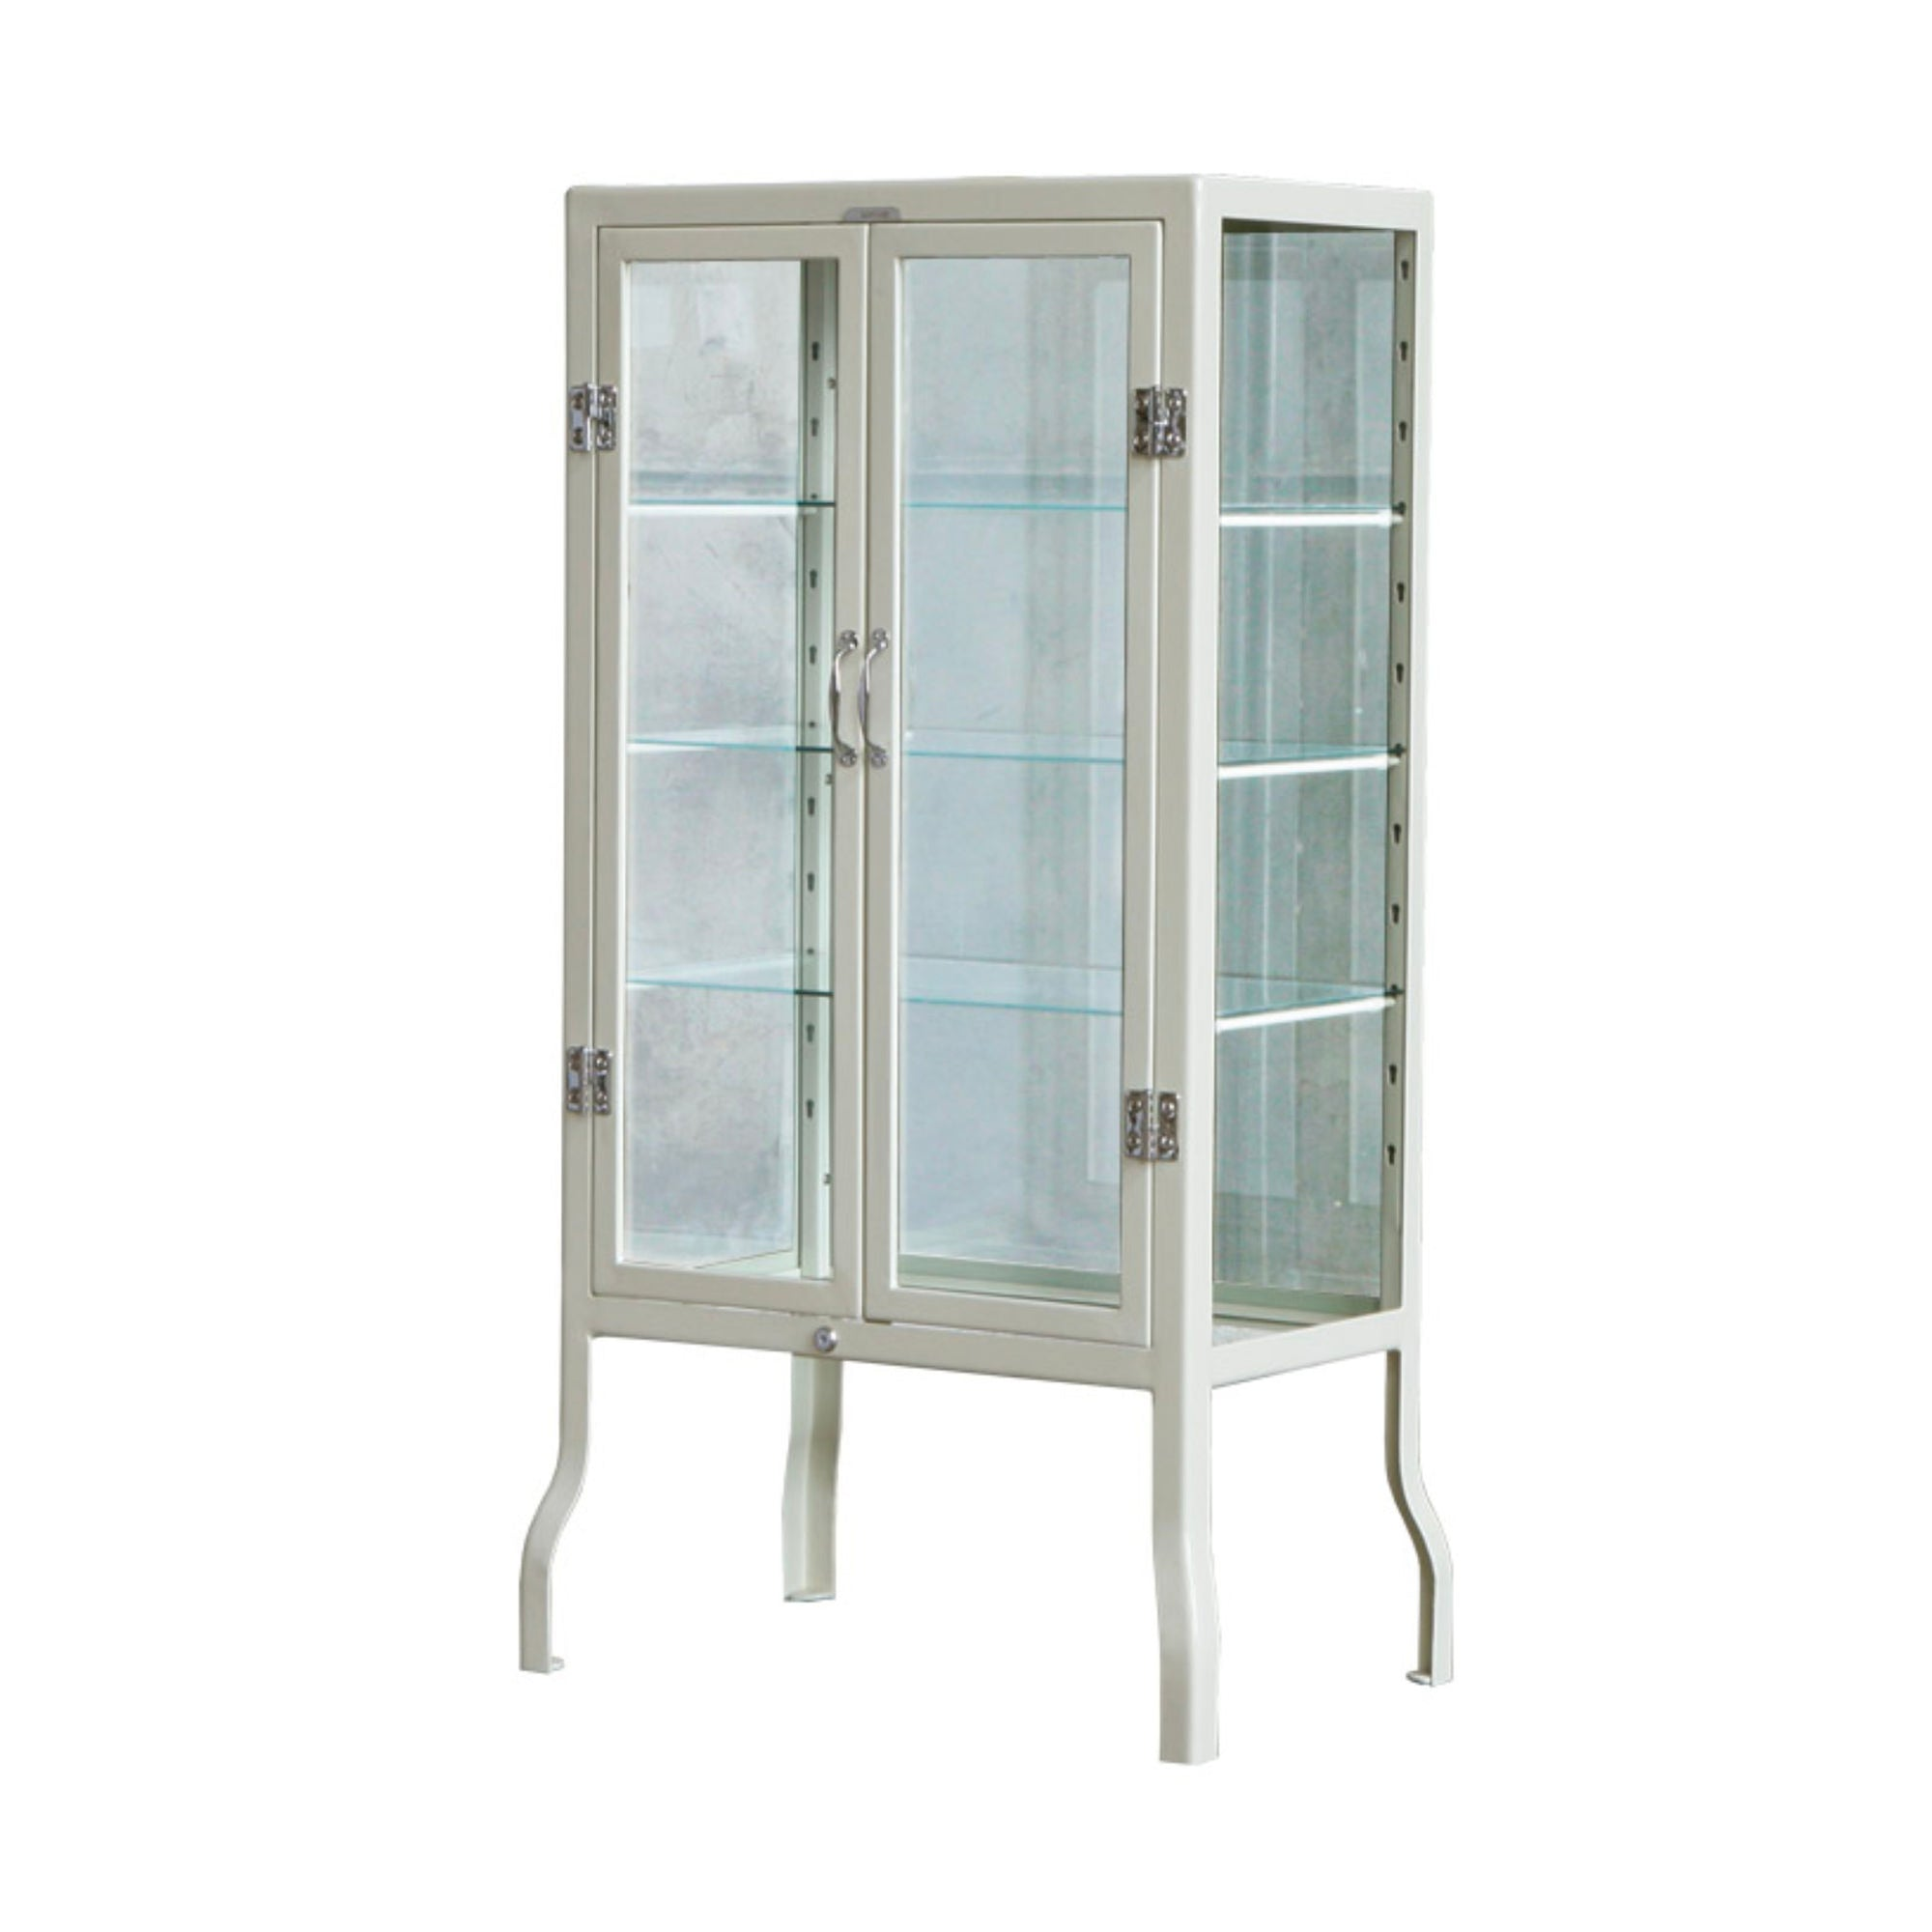 Dulton Doctor cabinet, small, ivory